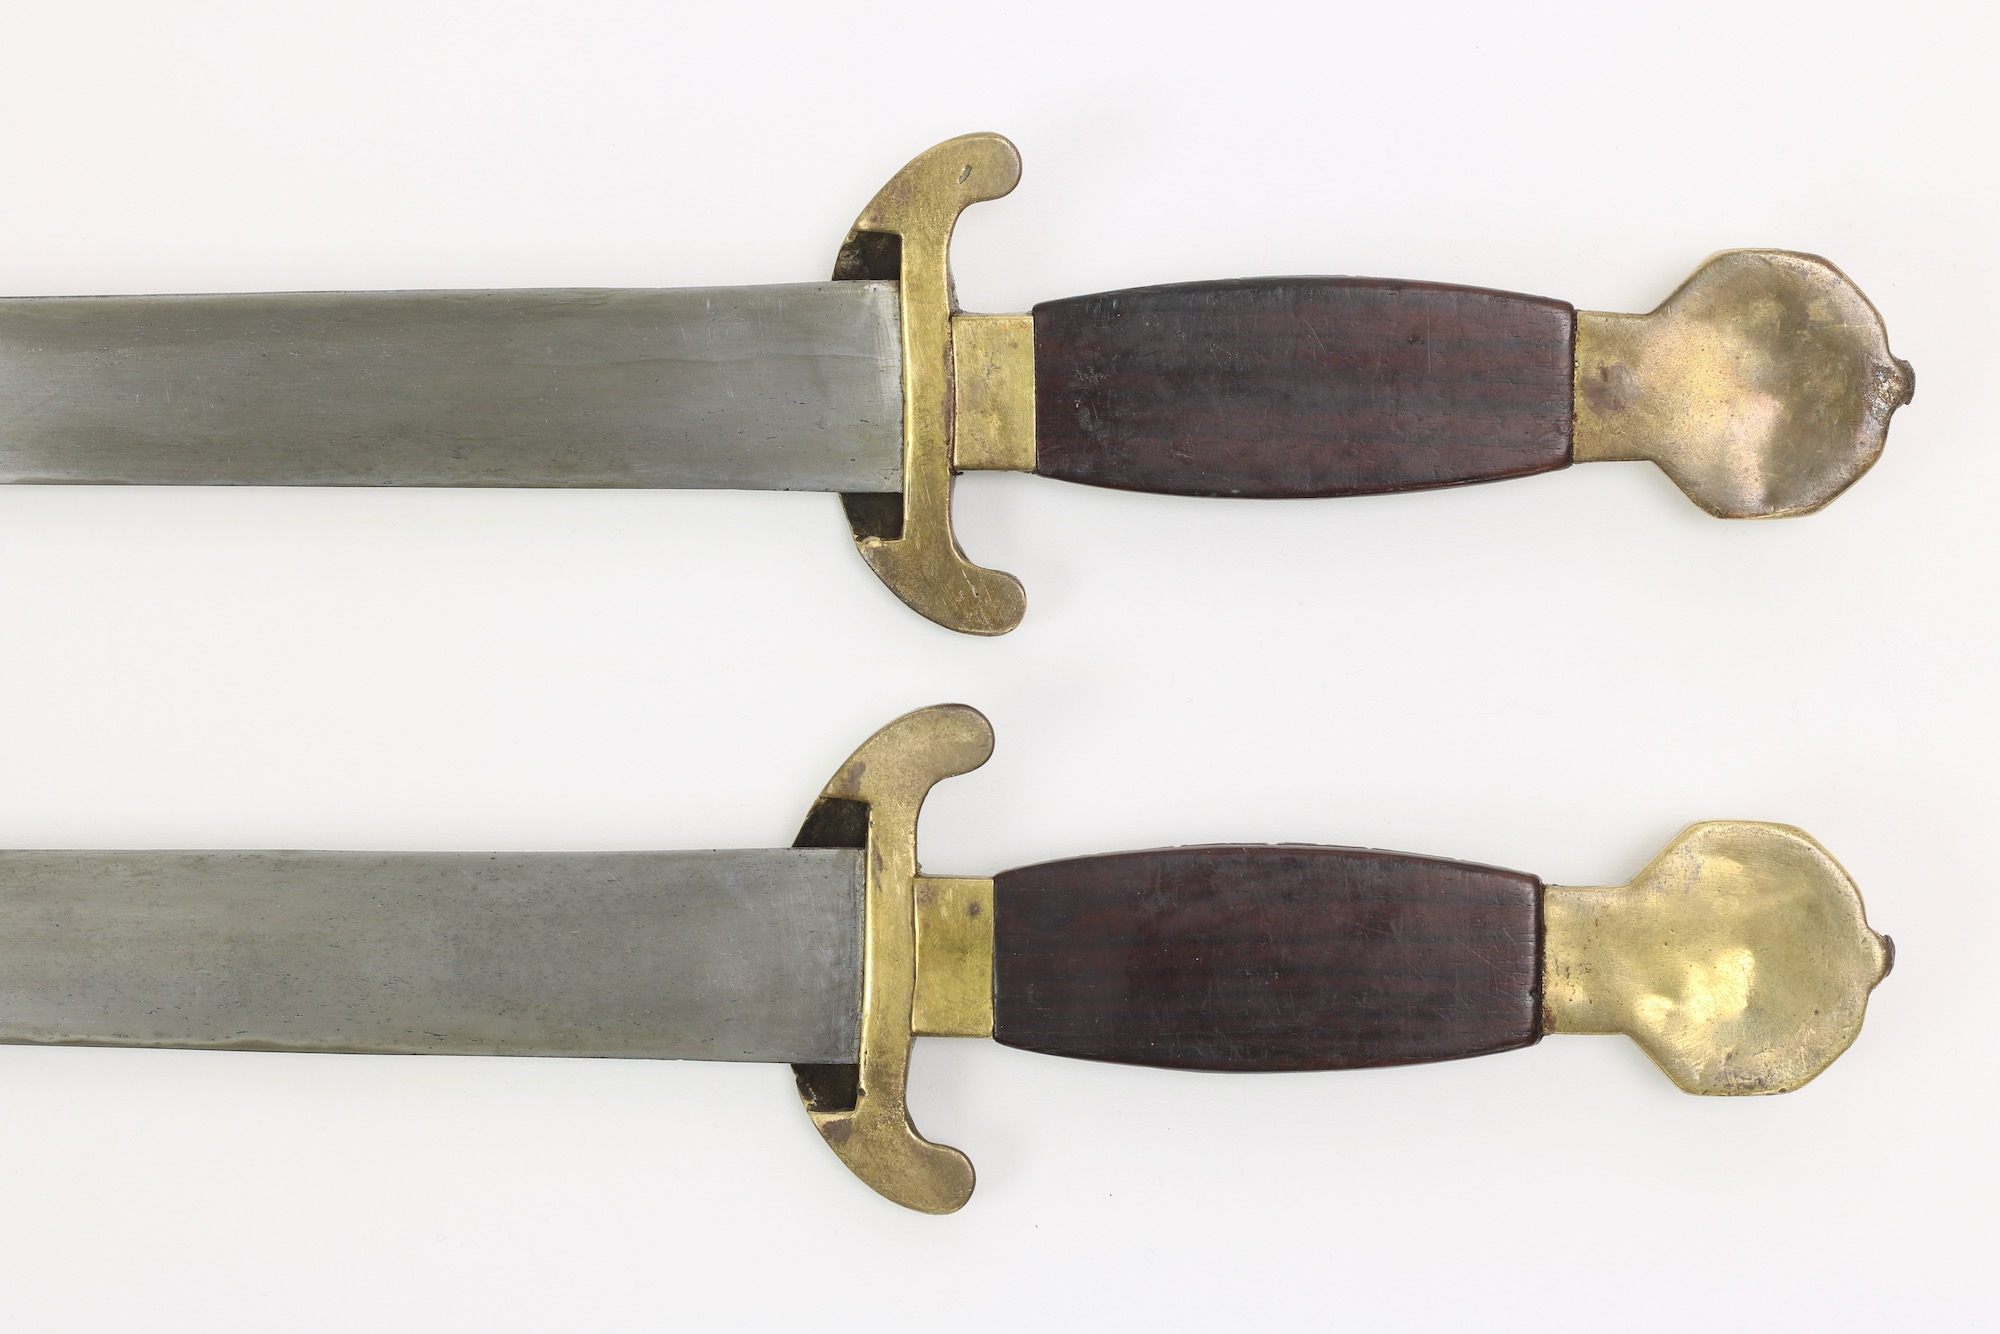 Antique Chinese double swords. Guangzhou, 1830 - 40's. Guangzhou, 1830's - 40's